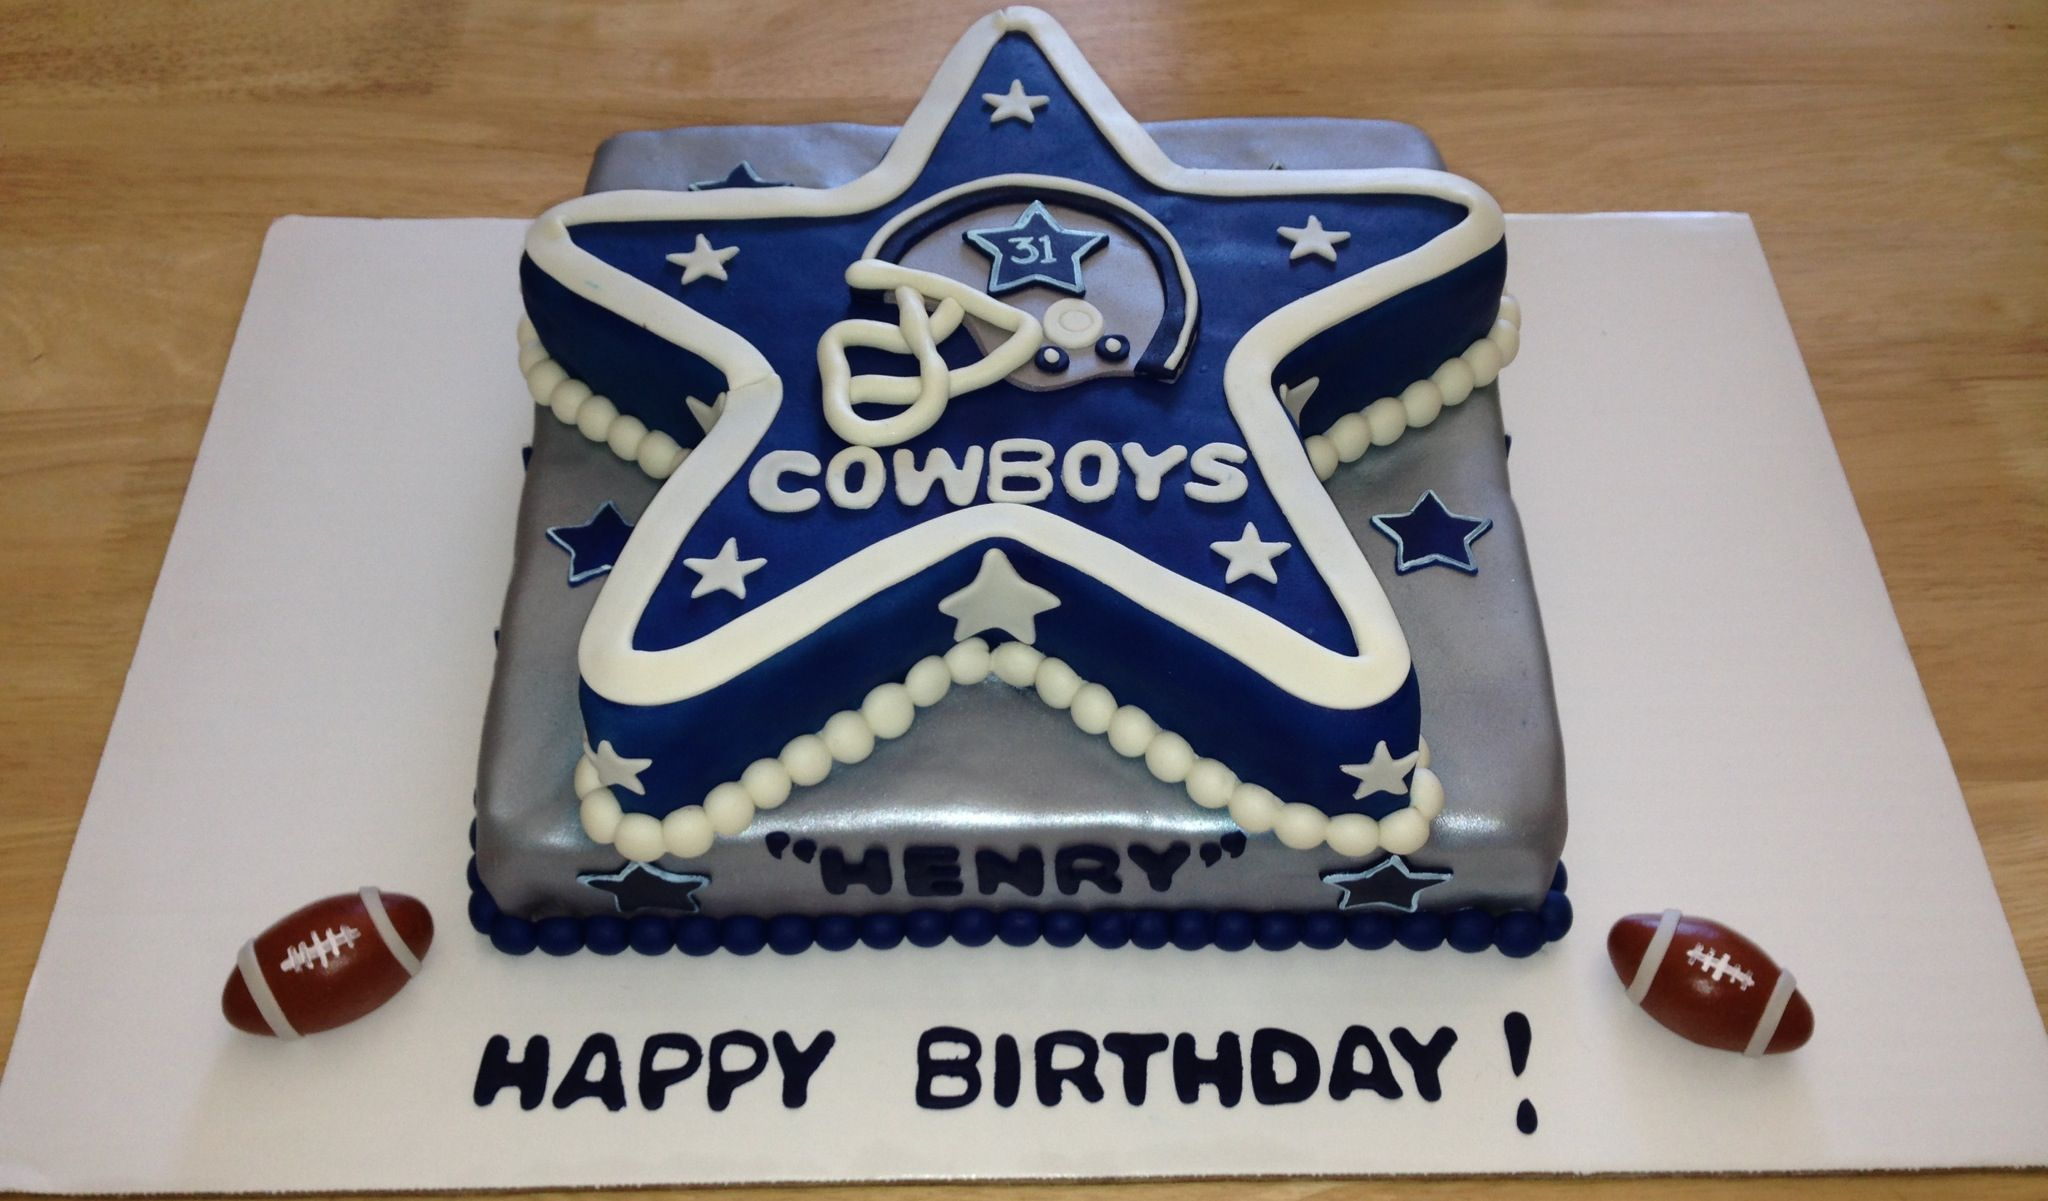 Best 30 Adult Cakes In Dallas TX With Reviews